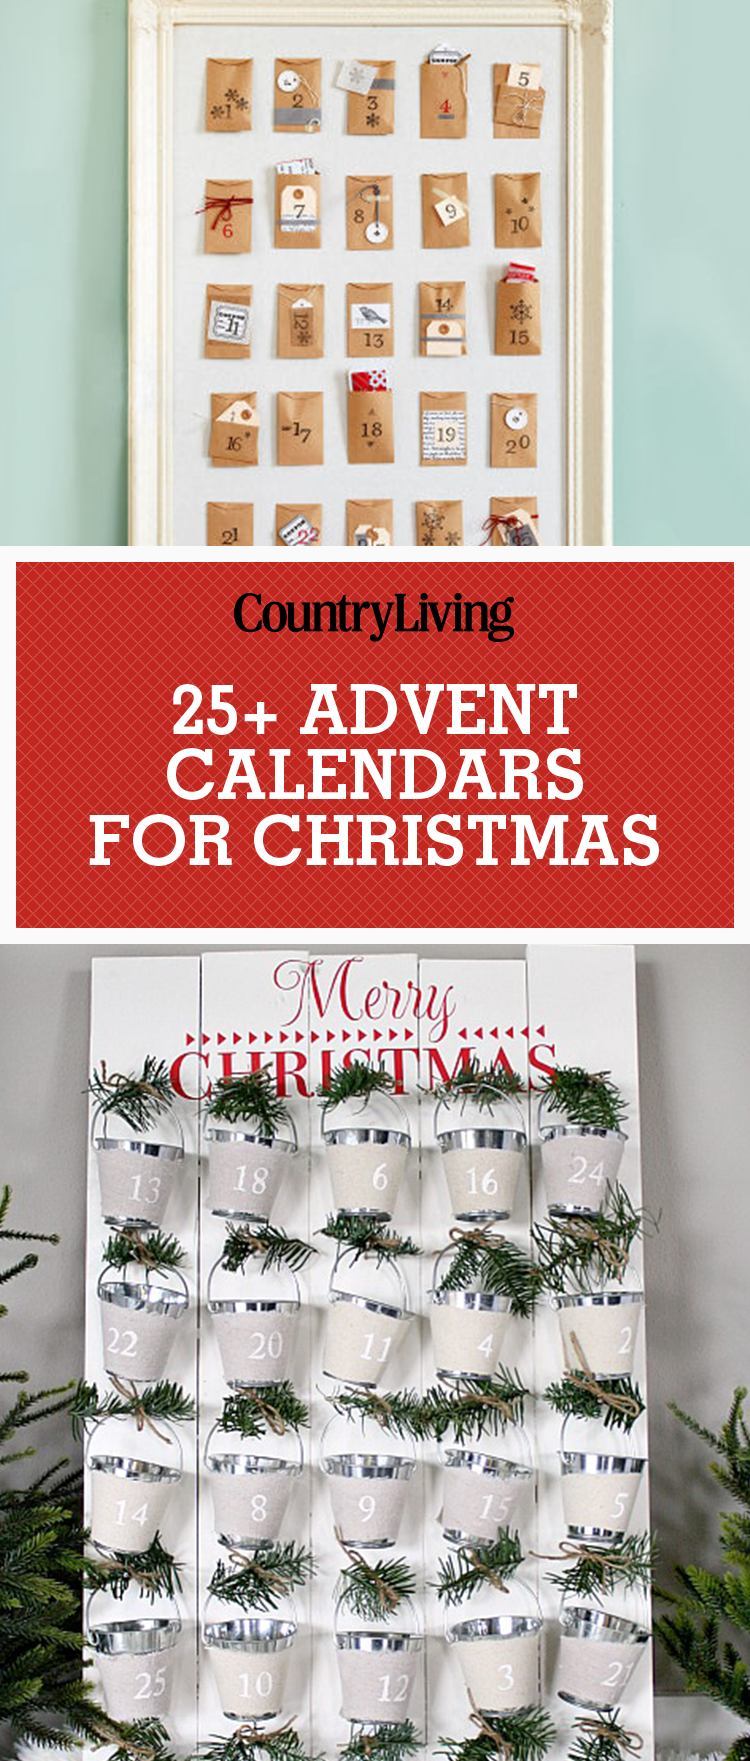 Xmas Calendar Ideas : Diy advent calendar ideas homemade christmas